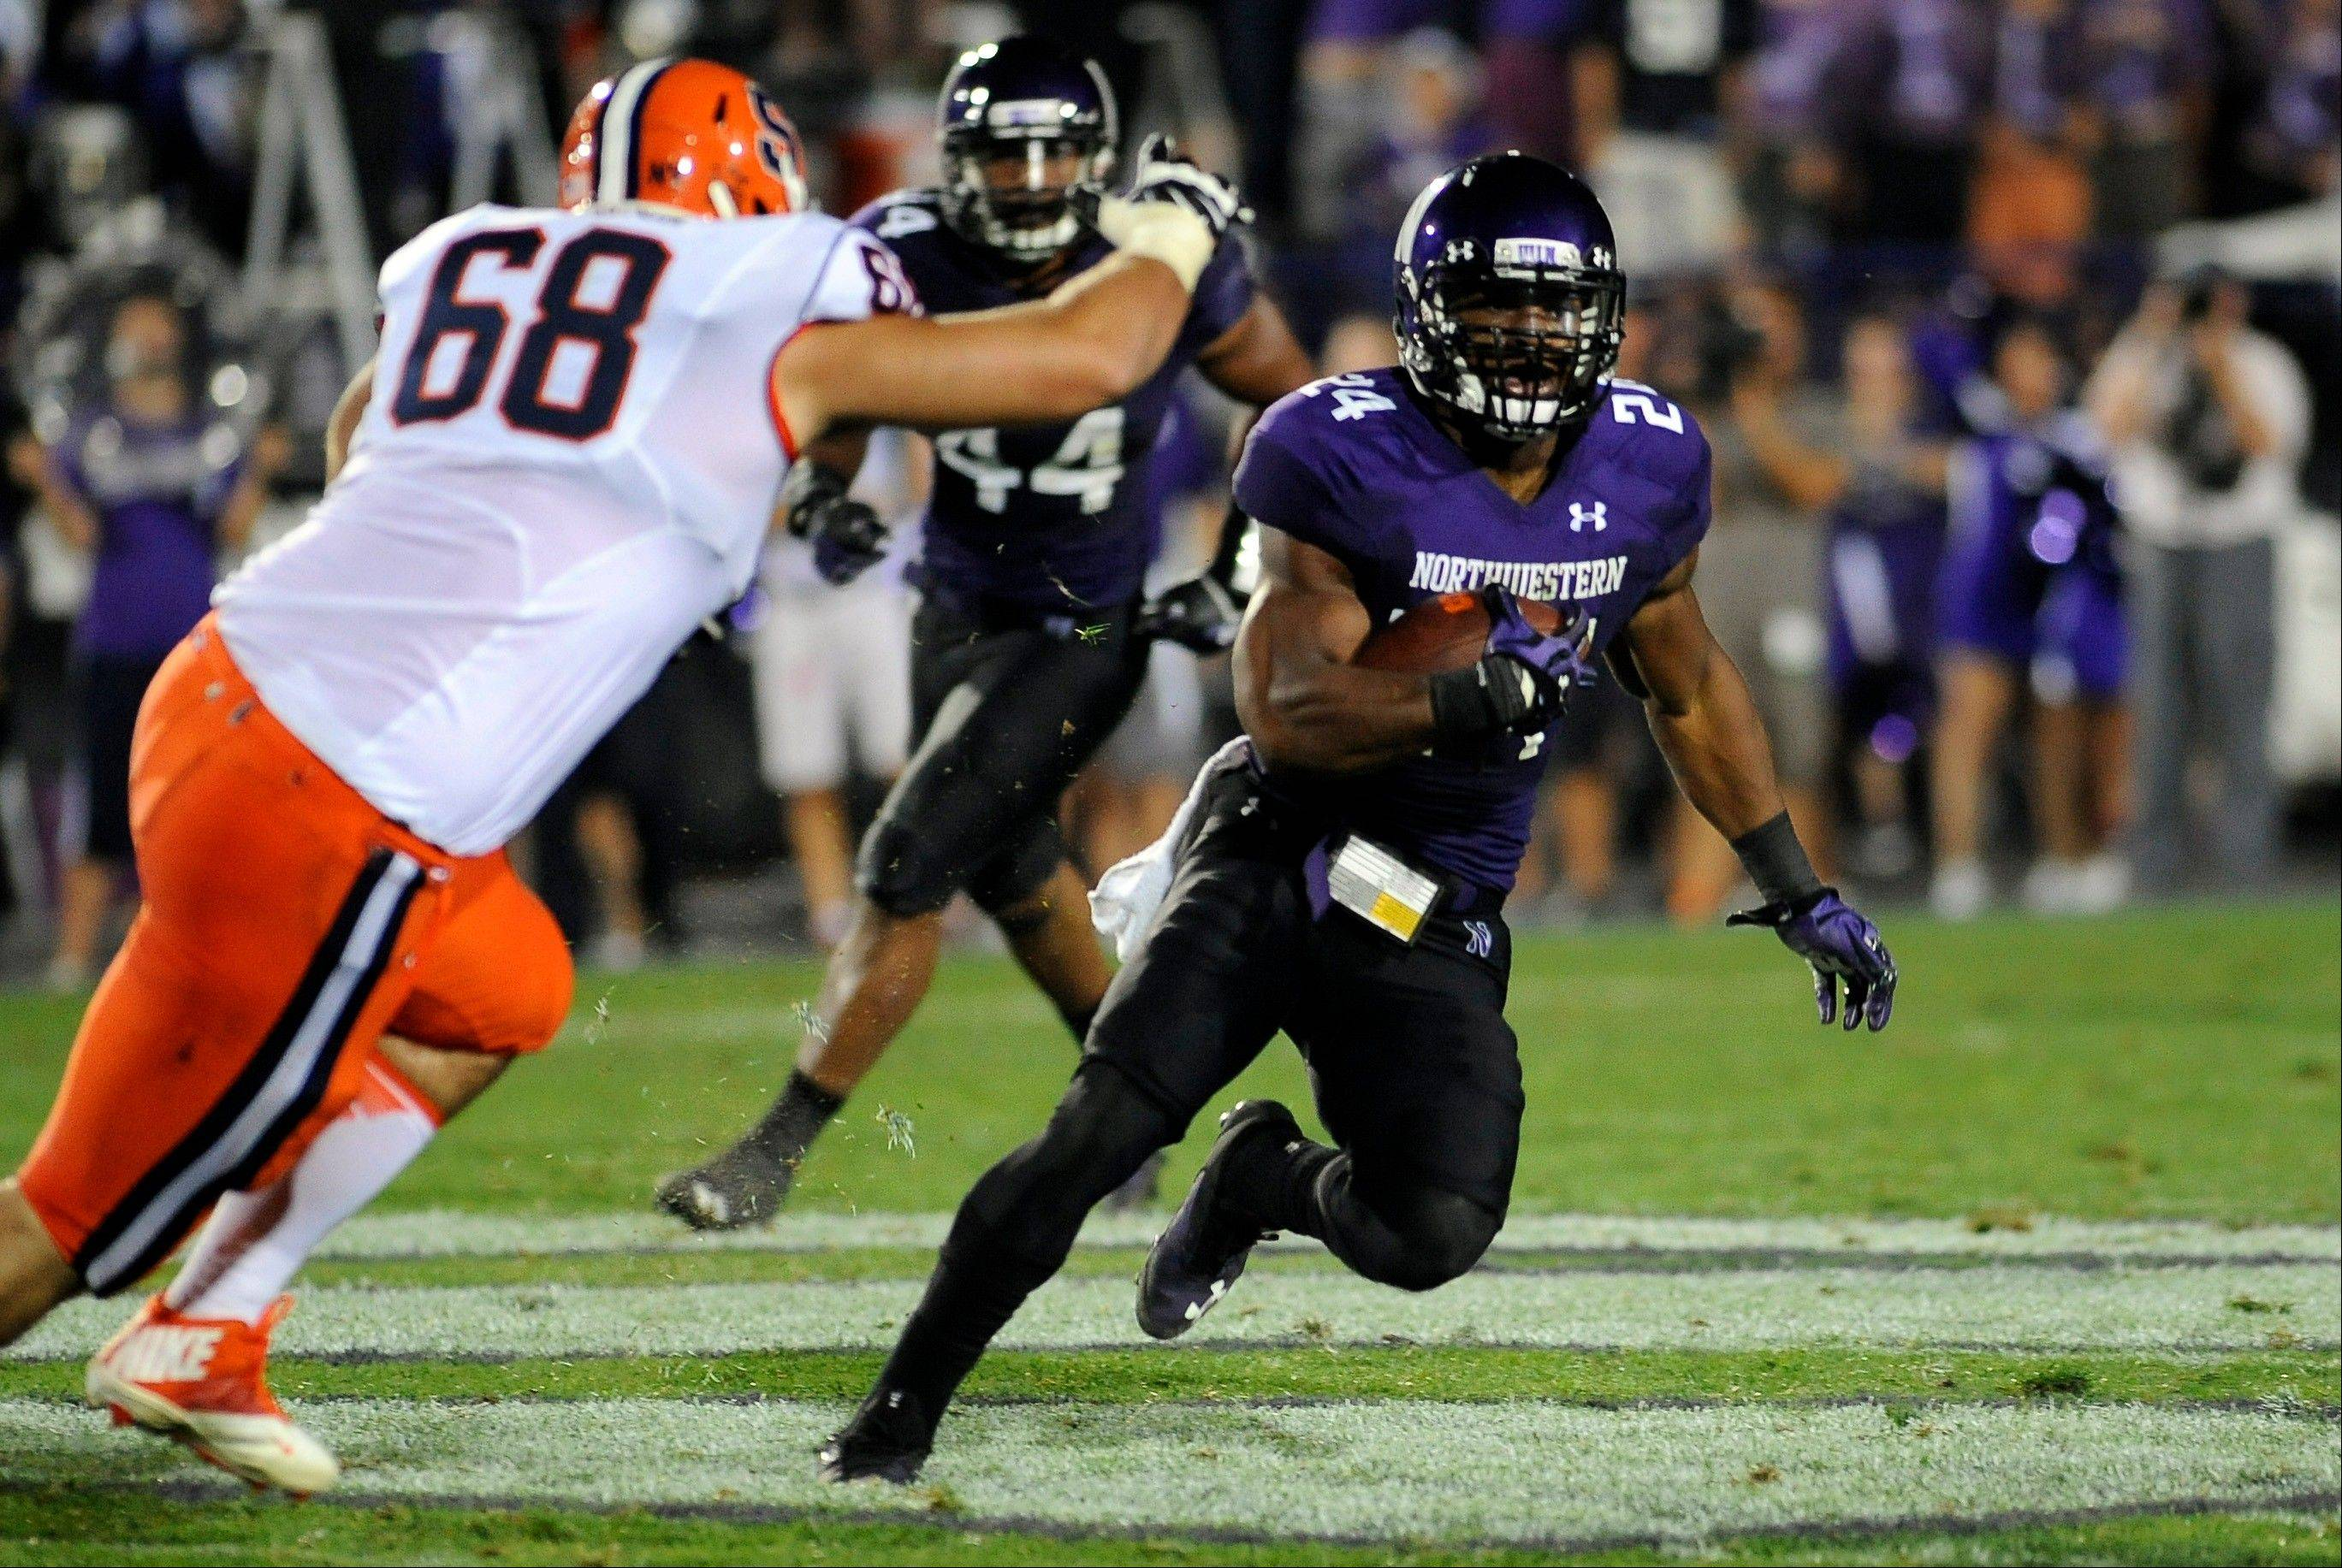 Northwestern�s Ibraheim Campbell runs with an interception in the second half of an NCAA college football game against Syracuse in Evanston, Ill., Saturday, Sept. 7, 2013.